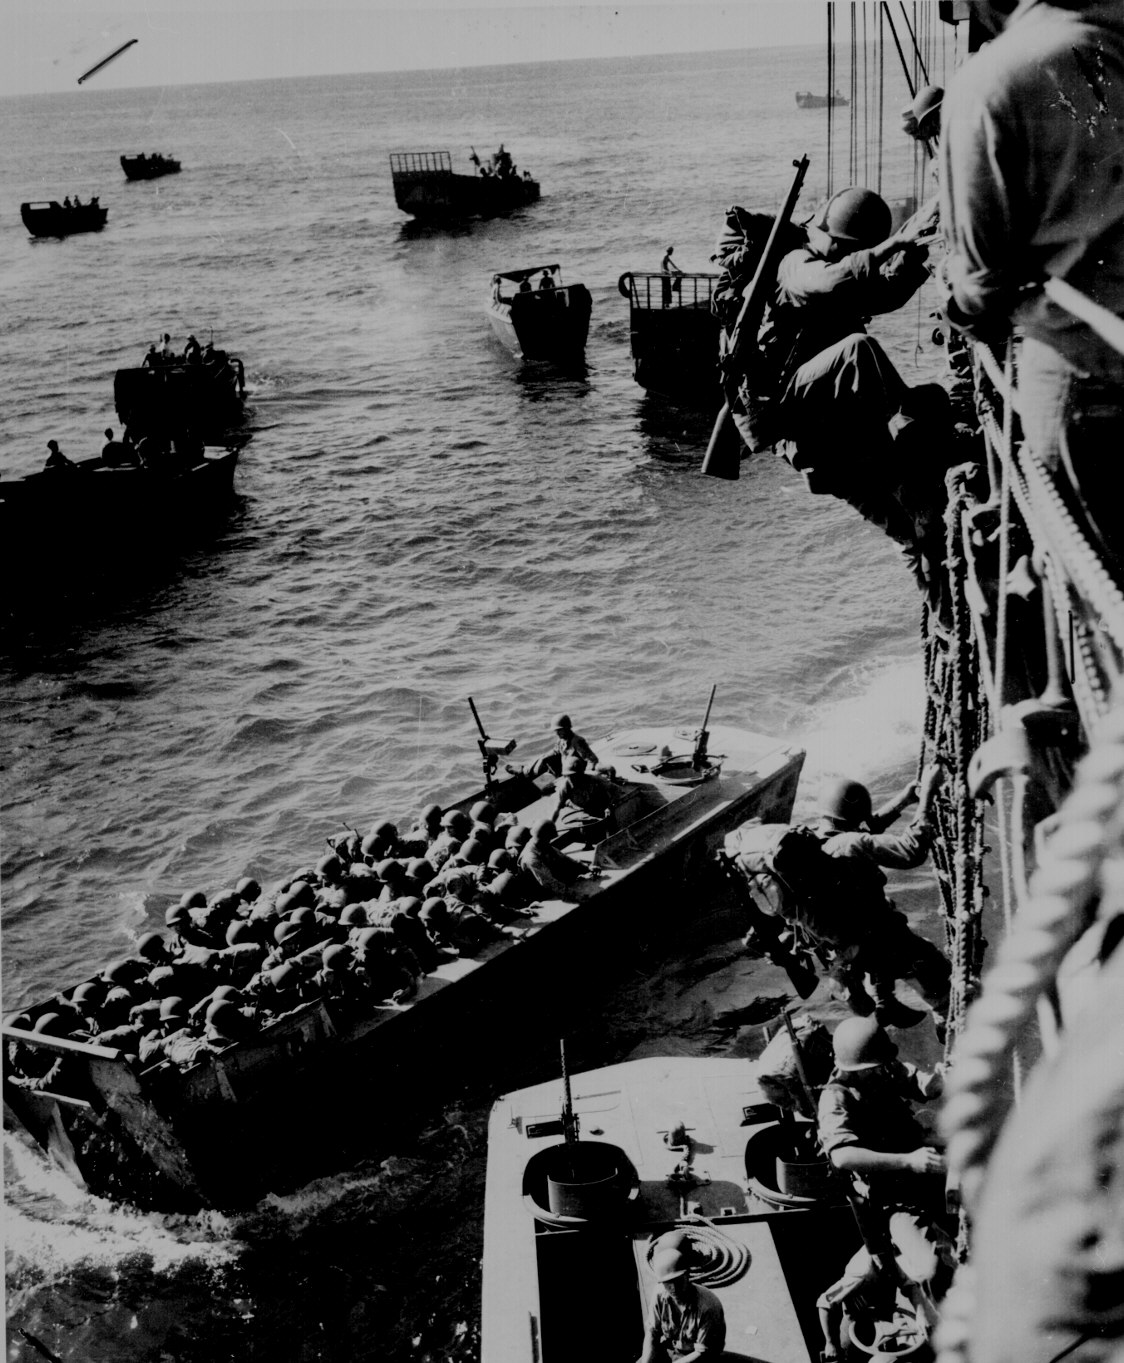 """U.S. troops go over the side of a Coast Guard manned combat transport to enter the landing barges at Empress Augusta Bay, Bougainville, as the invasion gets under way."" November 1943."